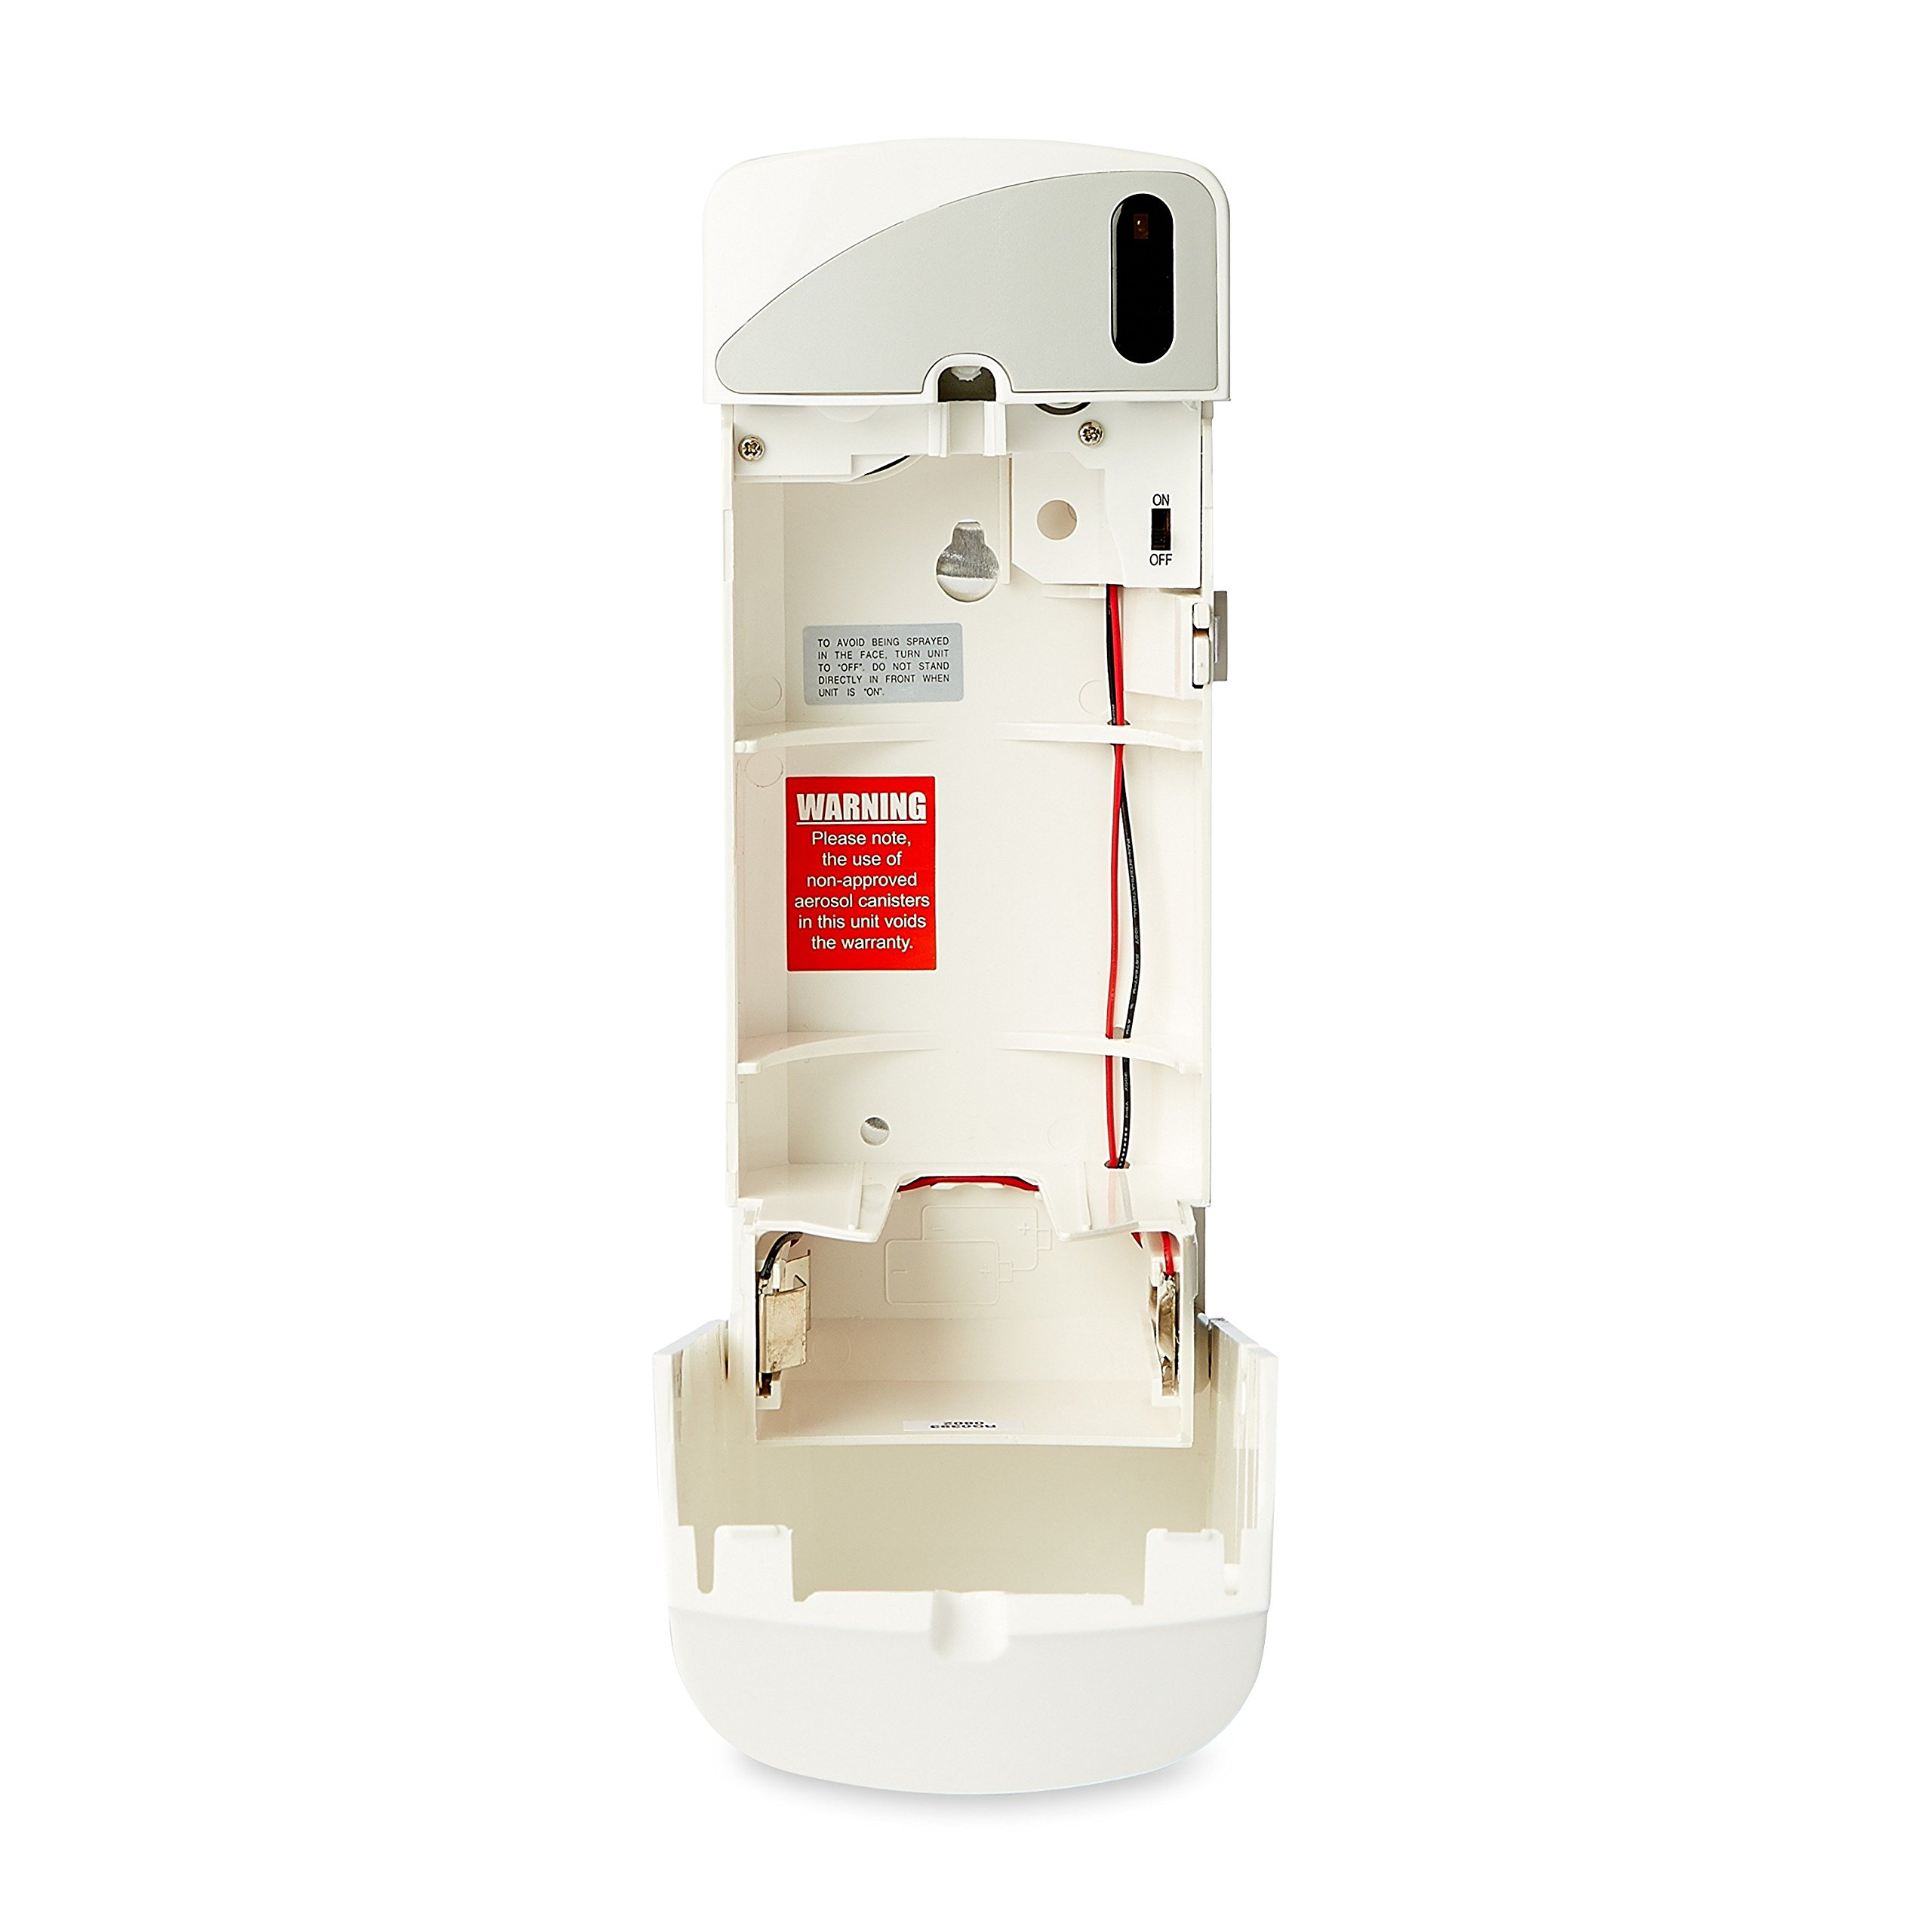 Rubbermaid Commercial 401375 Microburst 9000 Aerosol Odor Control Economizer Dispenser, White by Rubbermaid Commercial Products (Image #5)